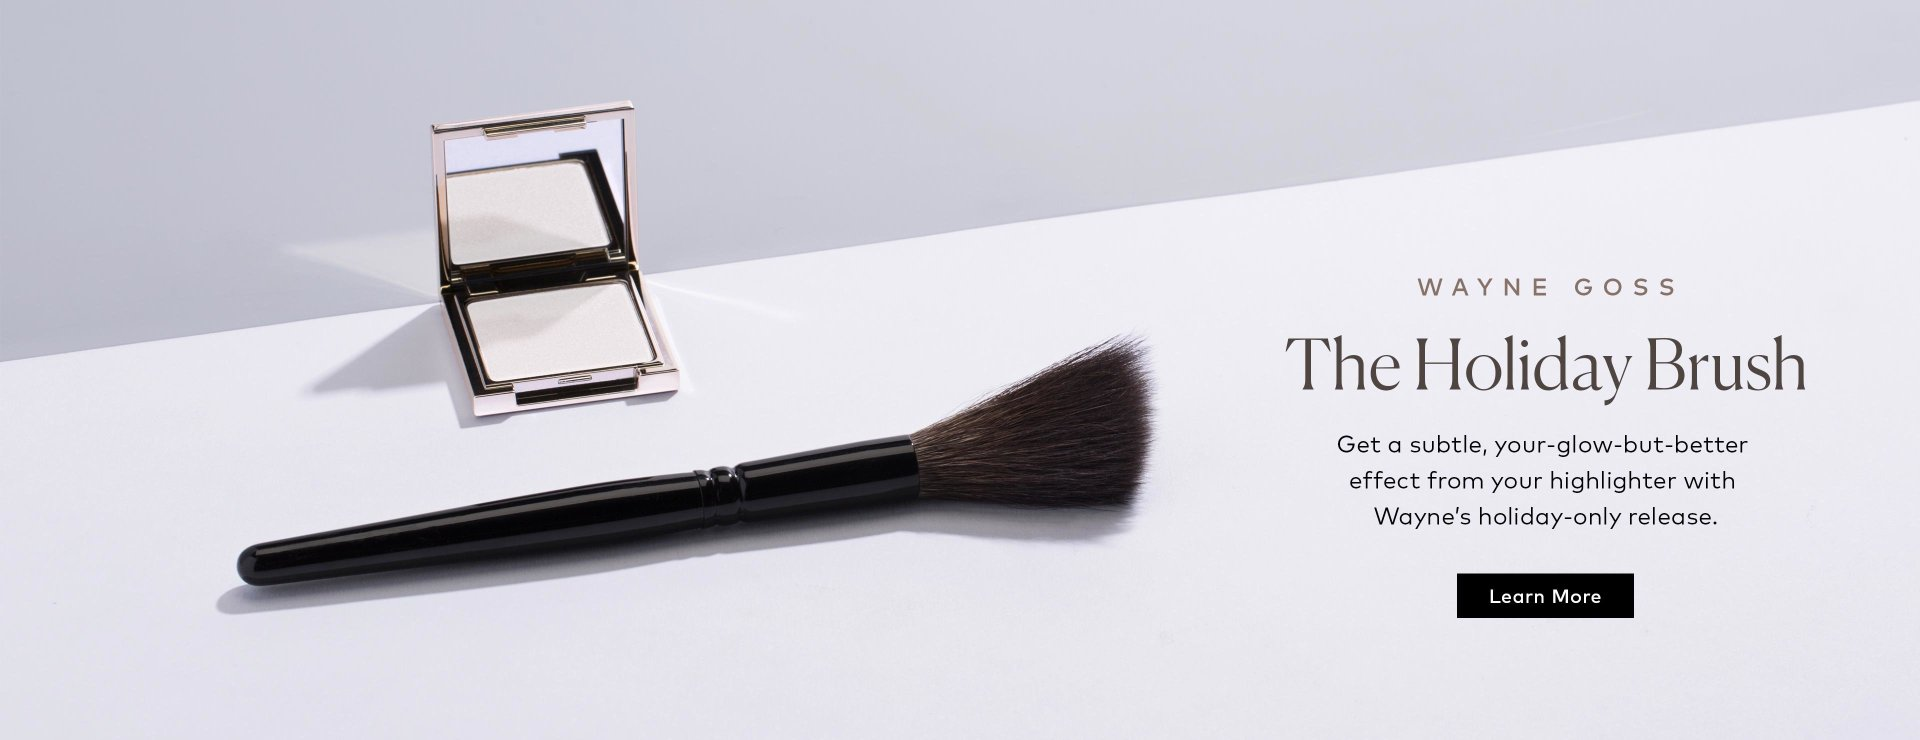 Wayne Goss The Holiday Brush 2017 has arrived – shop now!